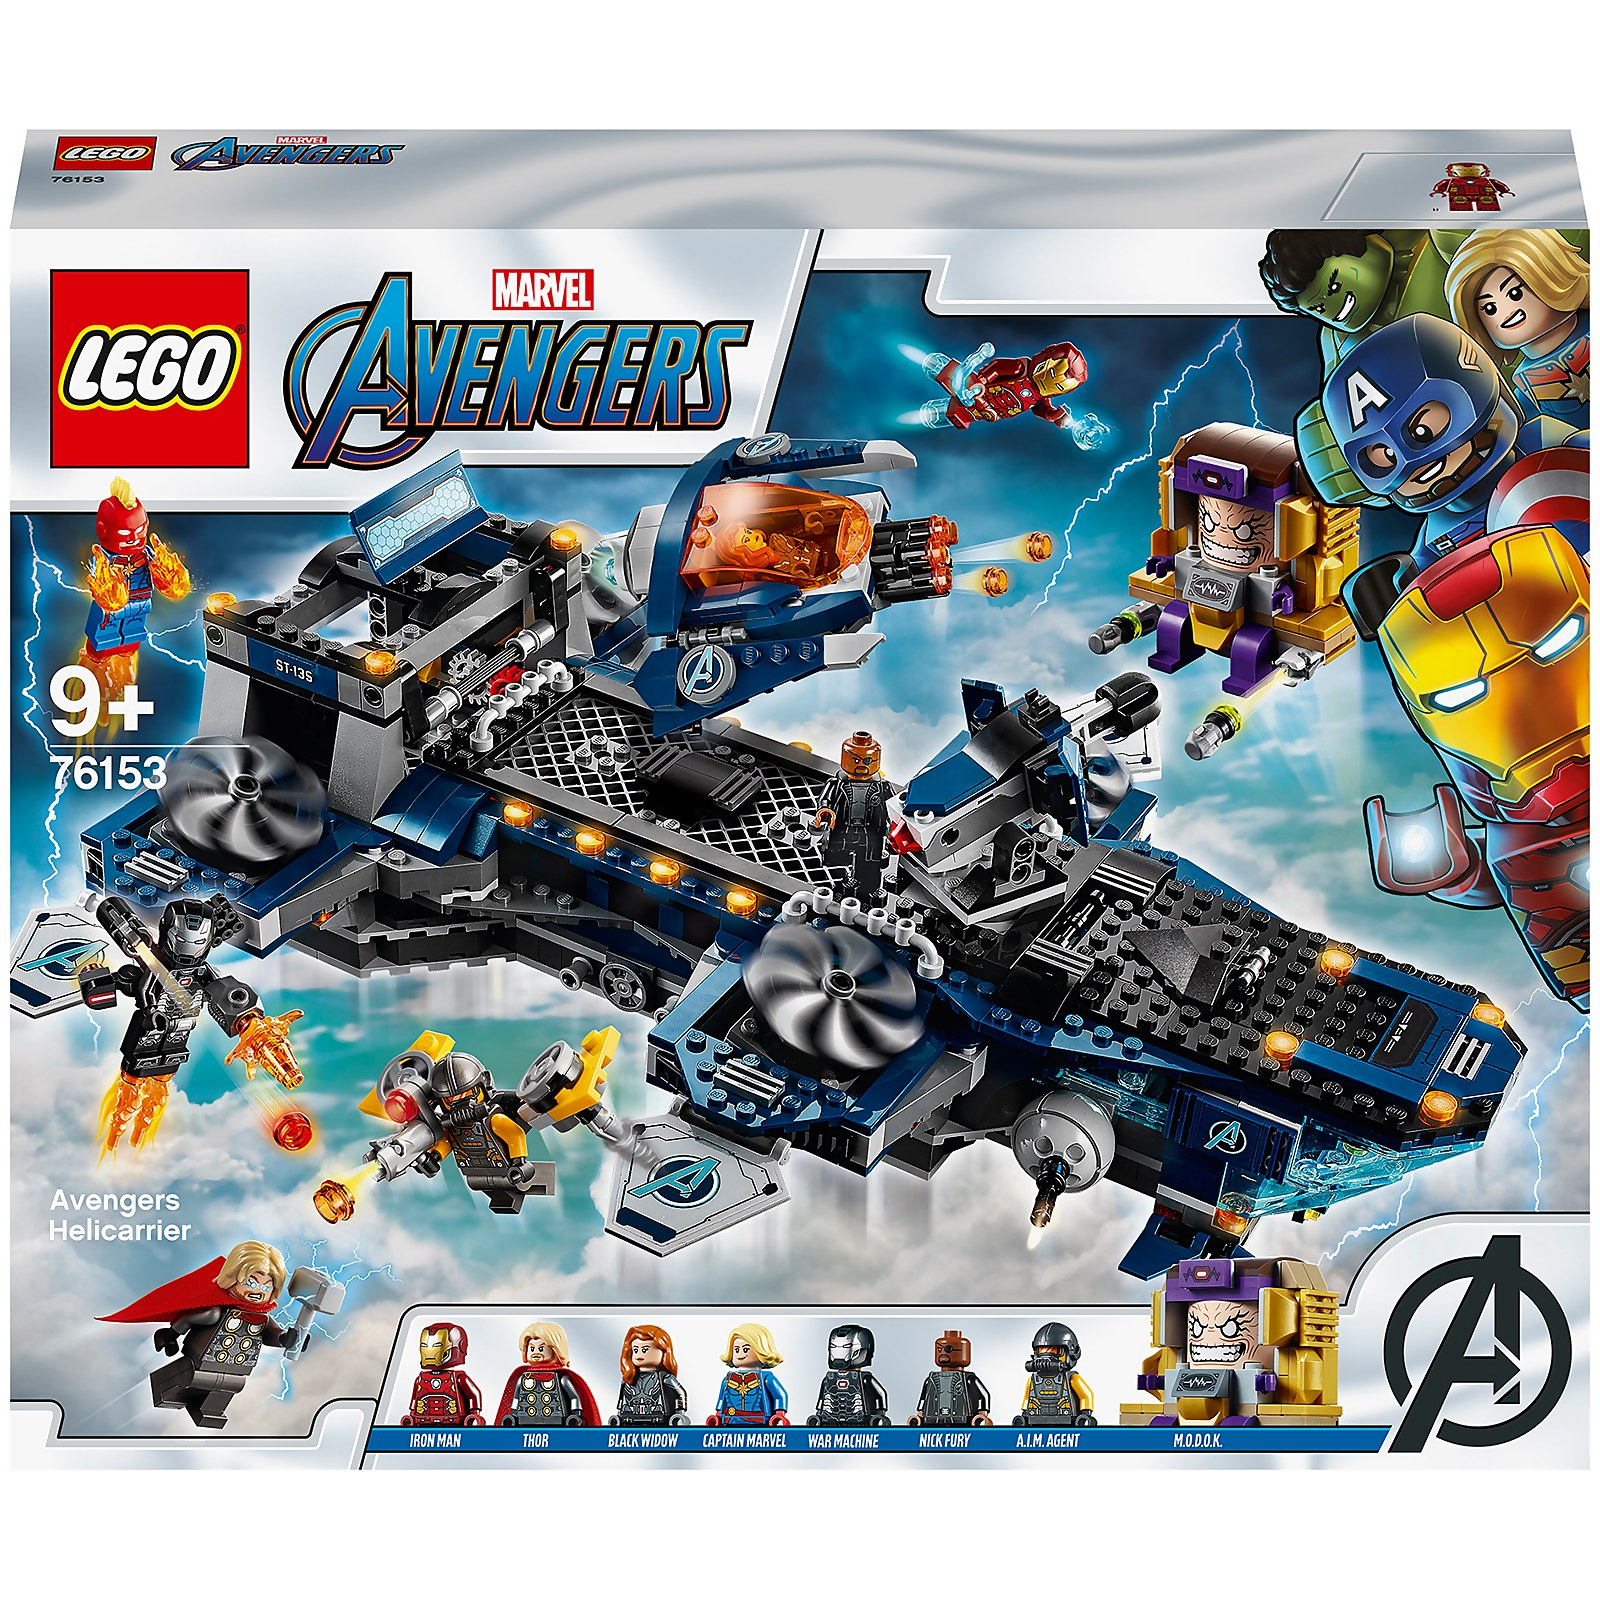 Image of 76153 LEGO® MARVEL SUPER HEROES Avengers Helicarrier